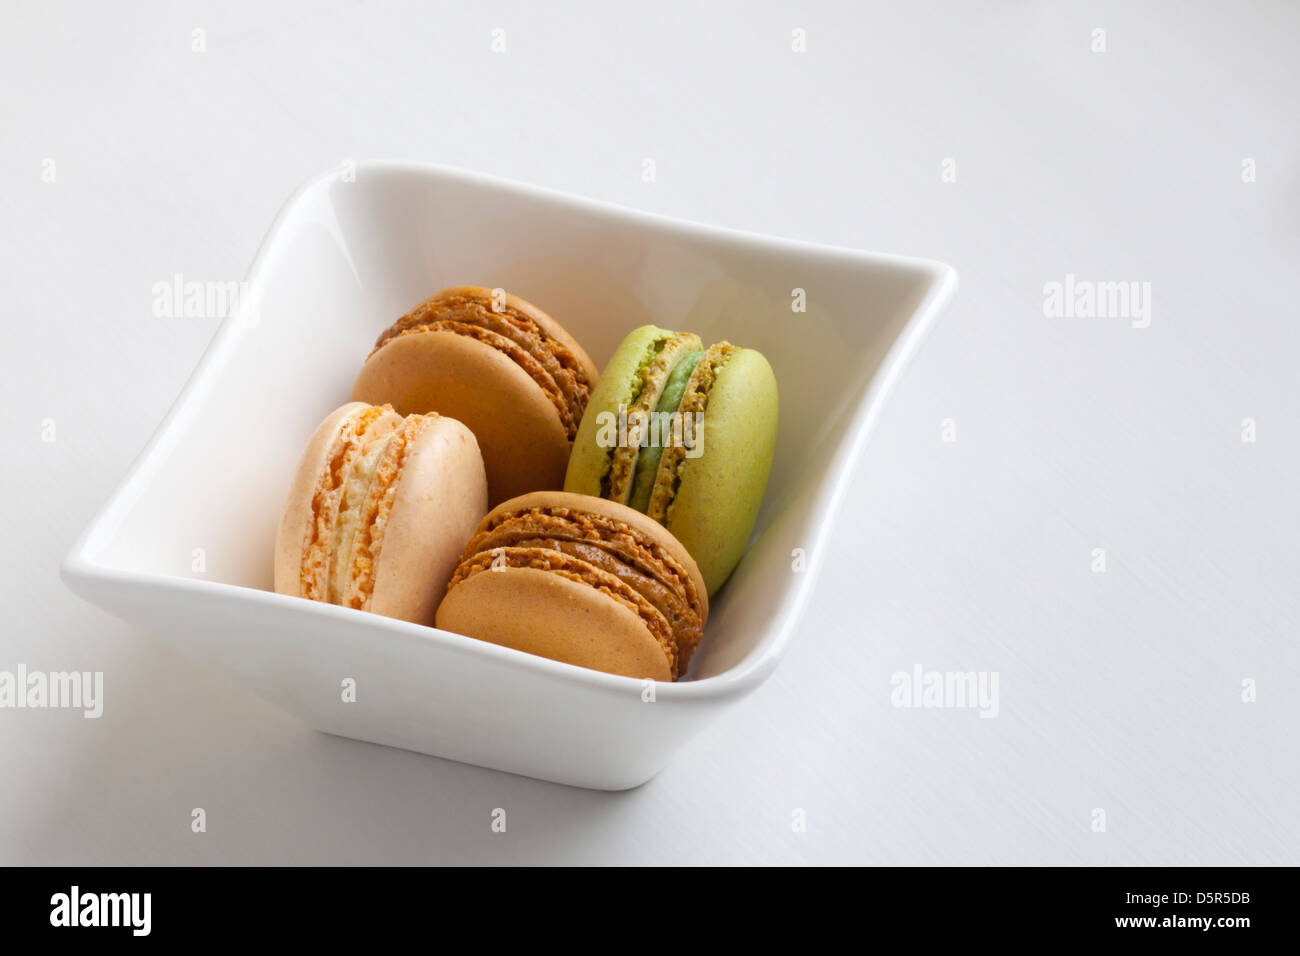 Vanilla, mocha and pistachio flavored imported French macarons at the Fairmont Empress Hotel in Victoria - Stock Image